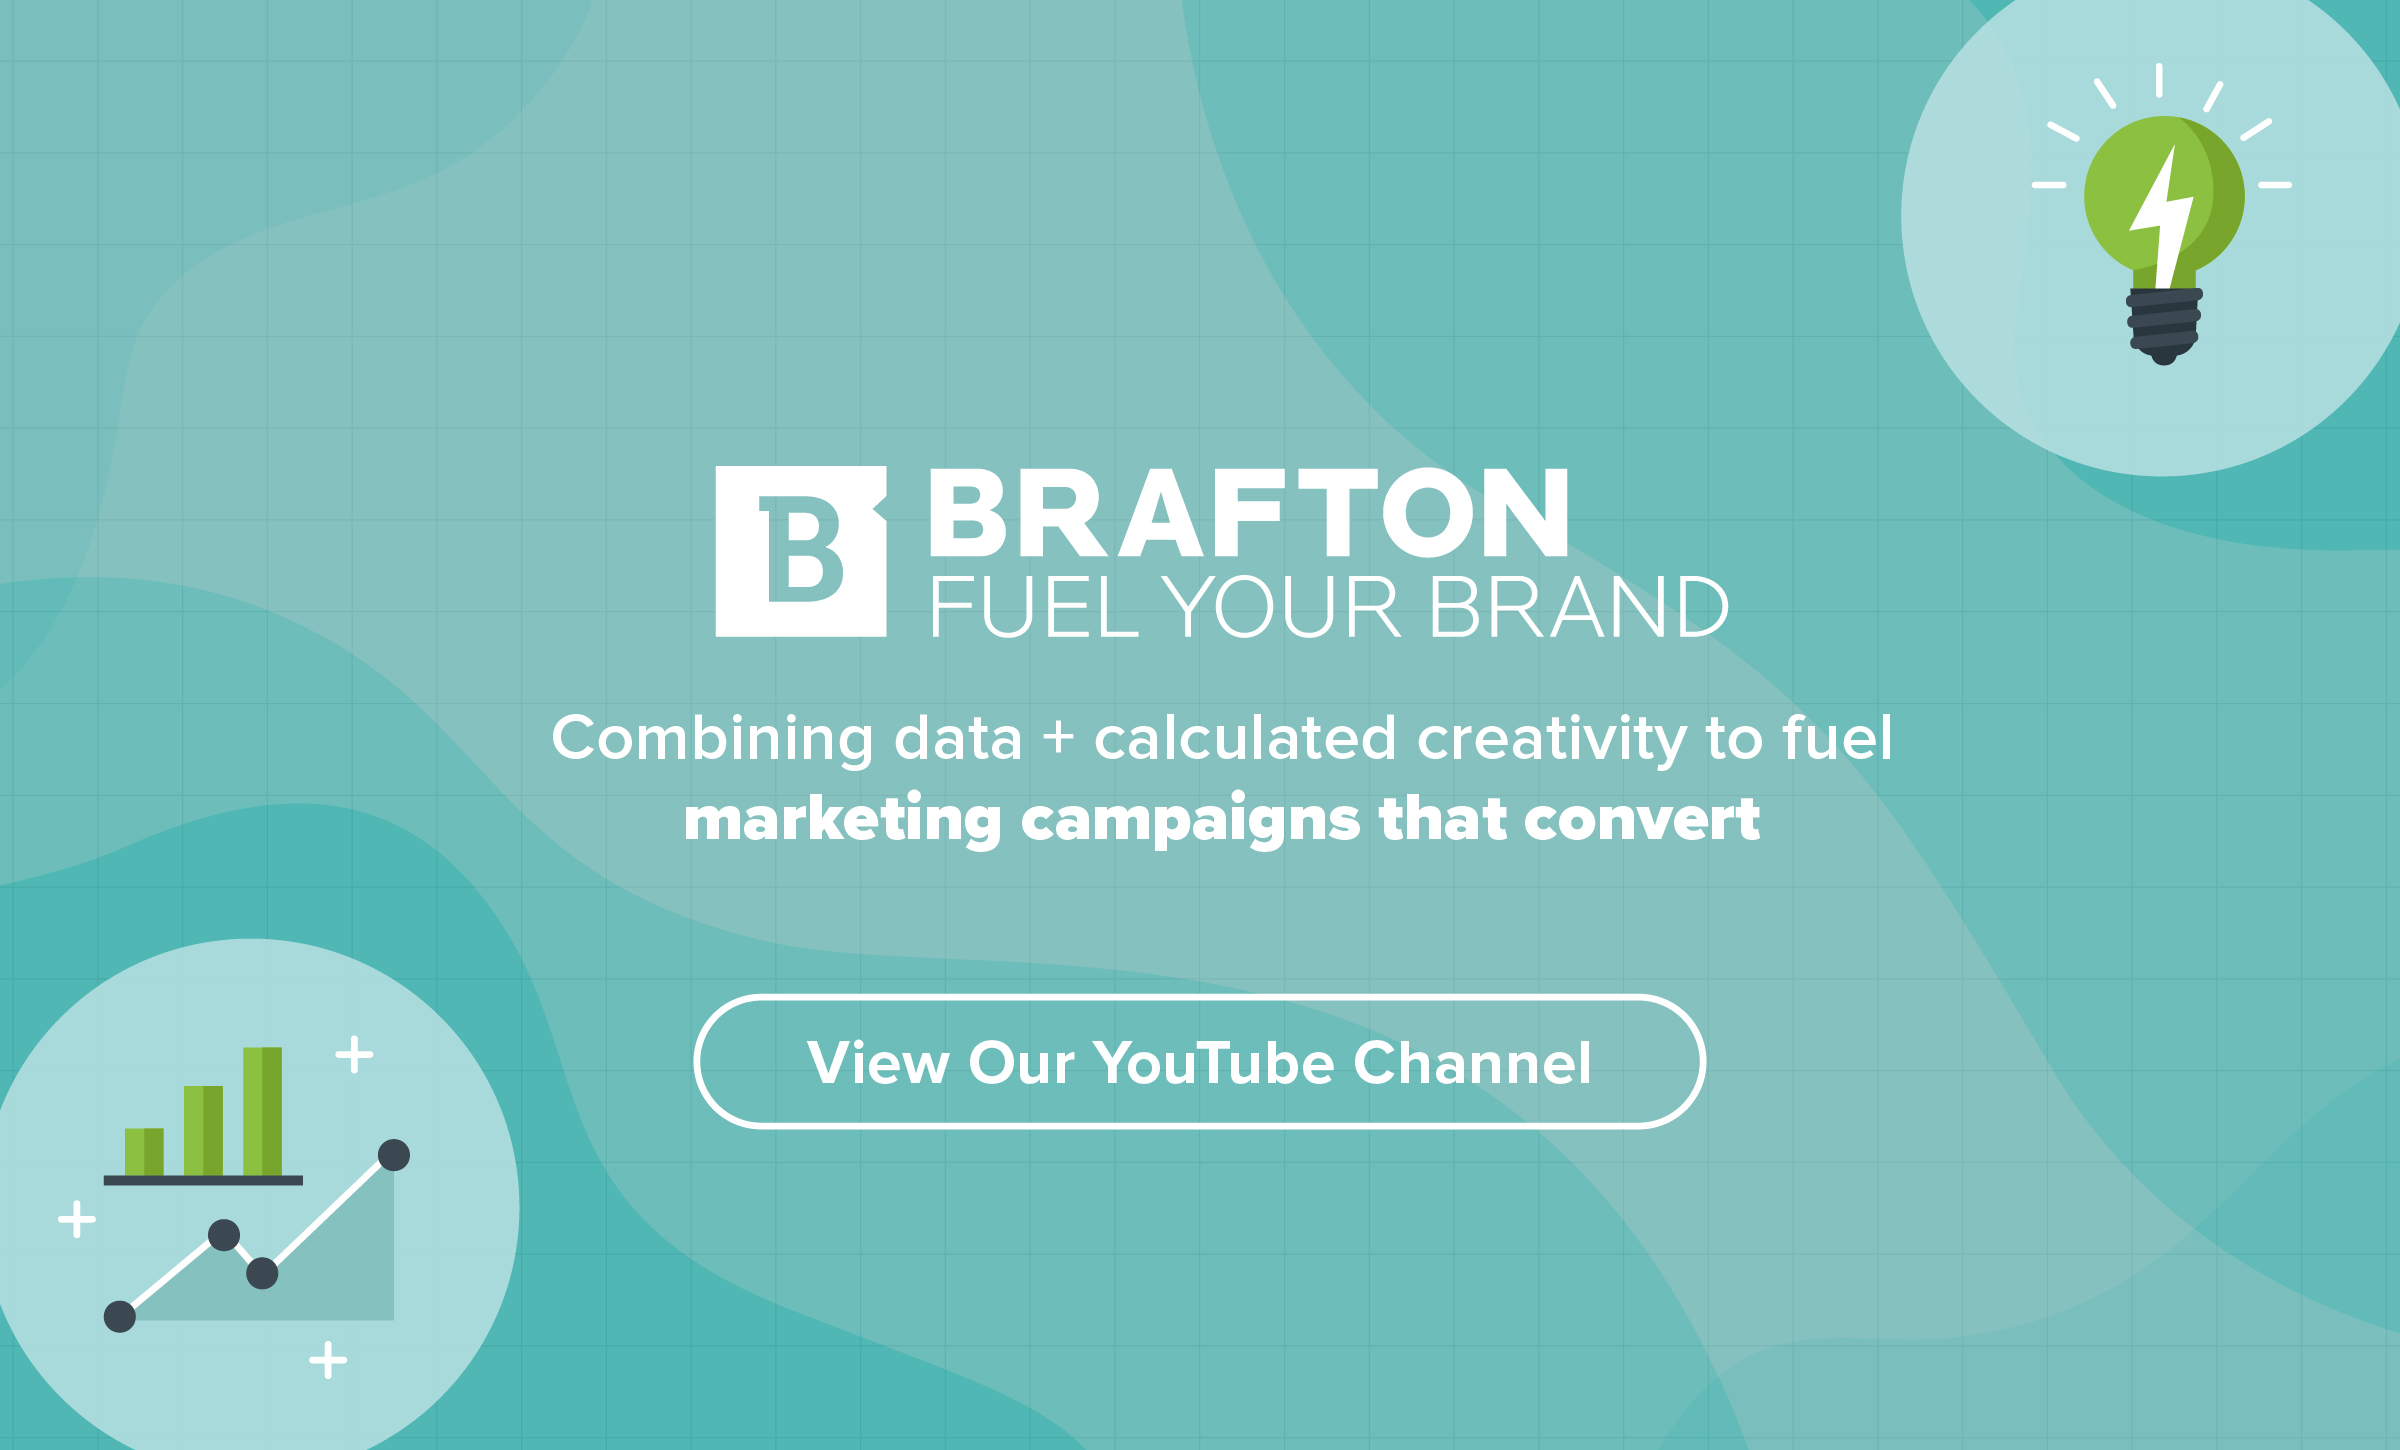 Check out Brafton's YouTube channel here!